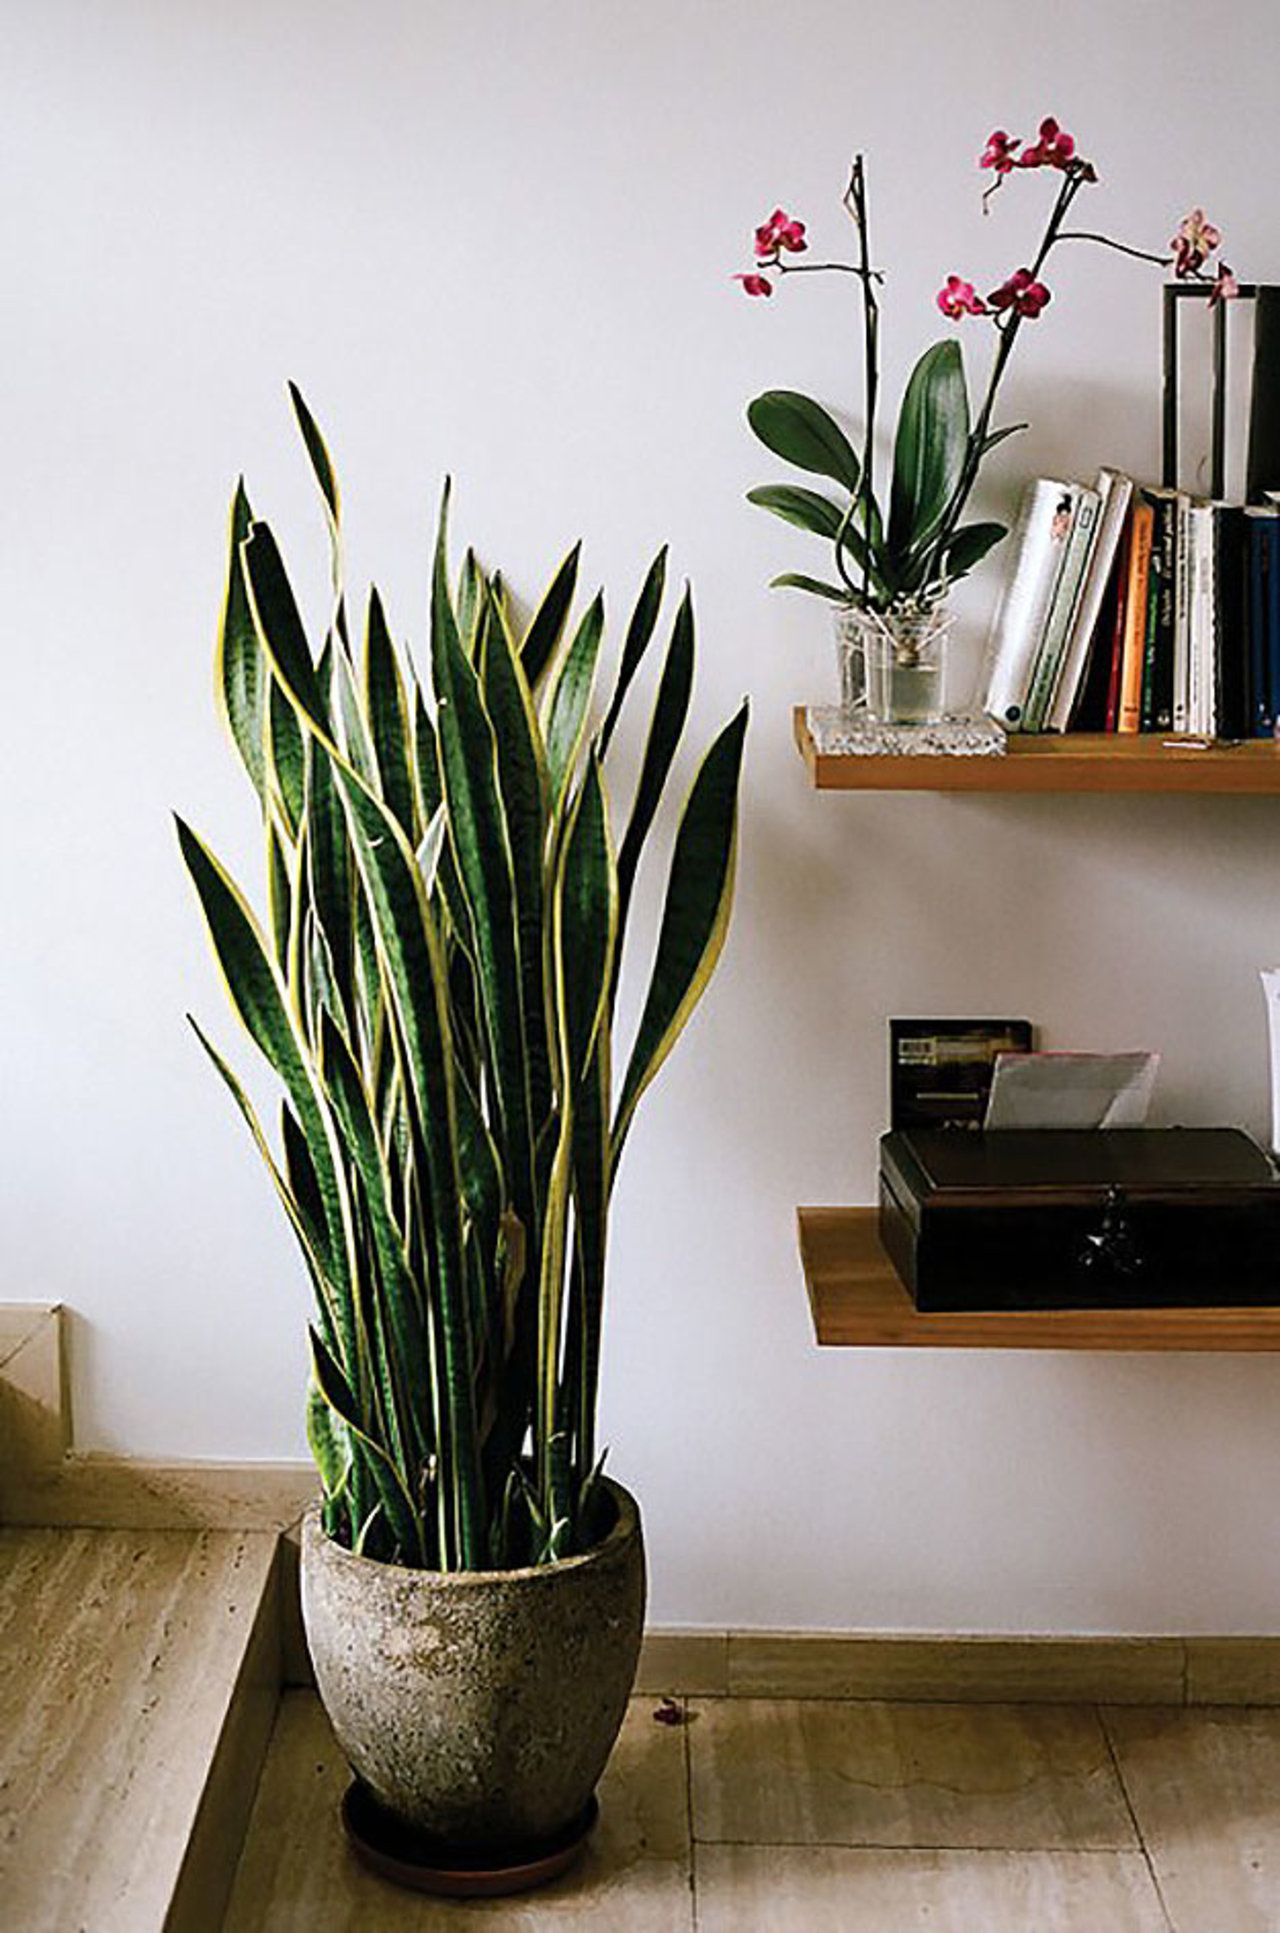 6 houseplants that will survive your busy schedule 4 mother in